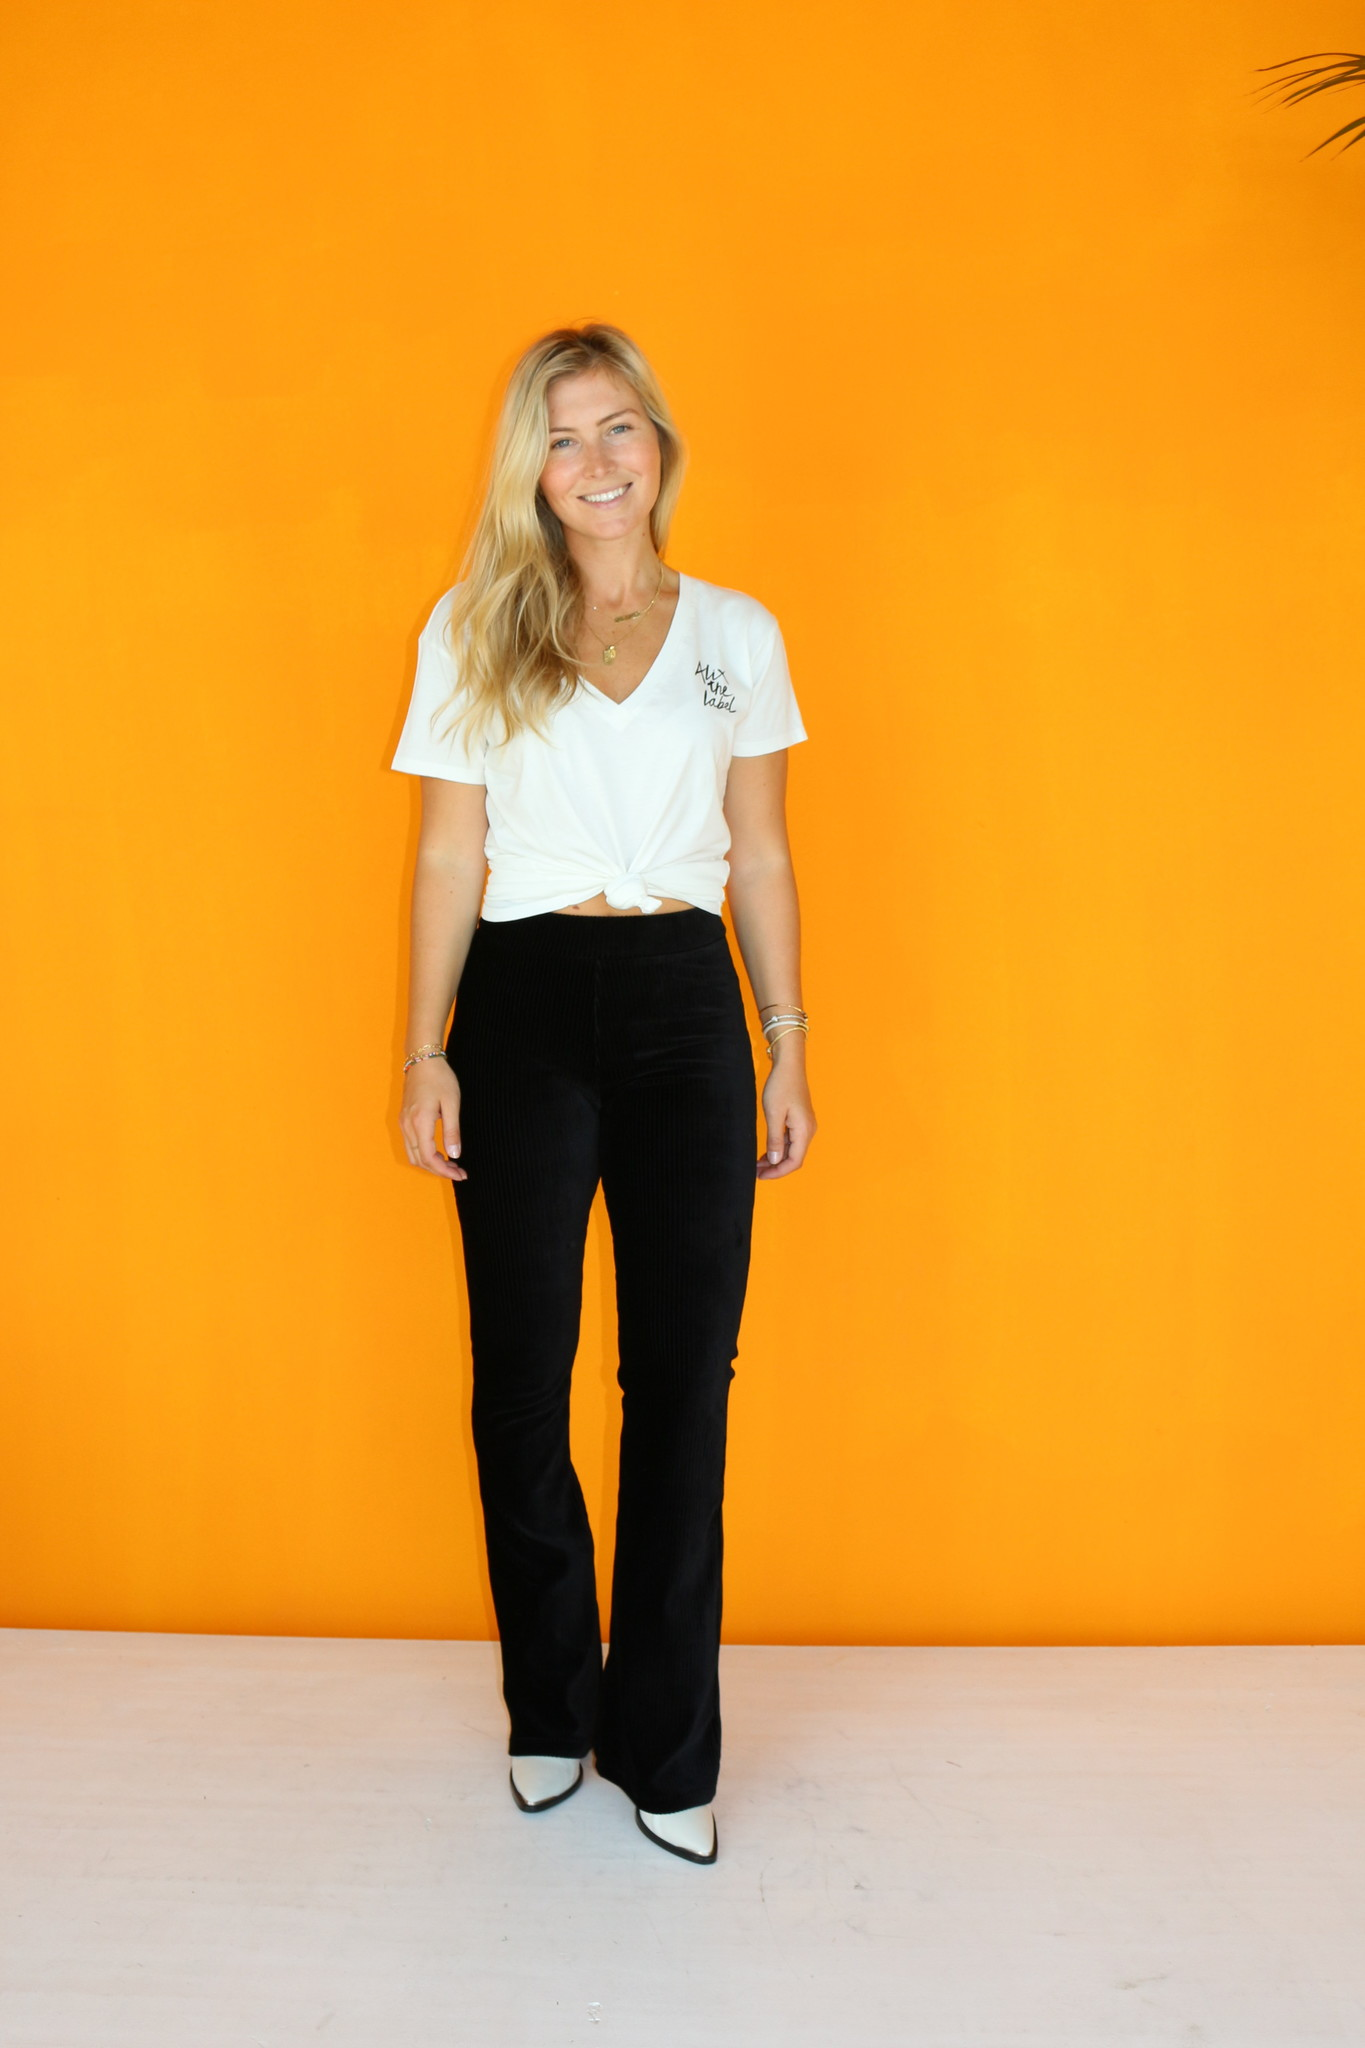 ALIX THE LABEL SHIRT FROM ALIX THE LABEL